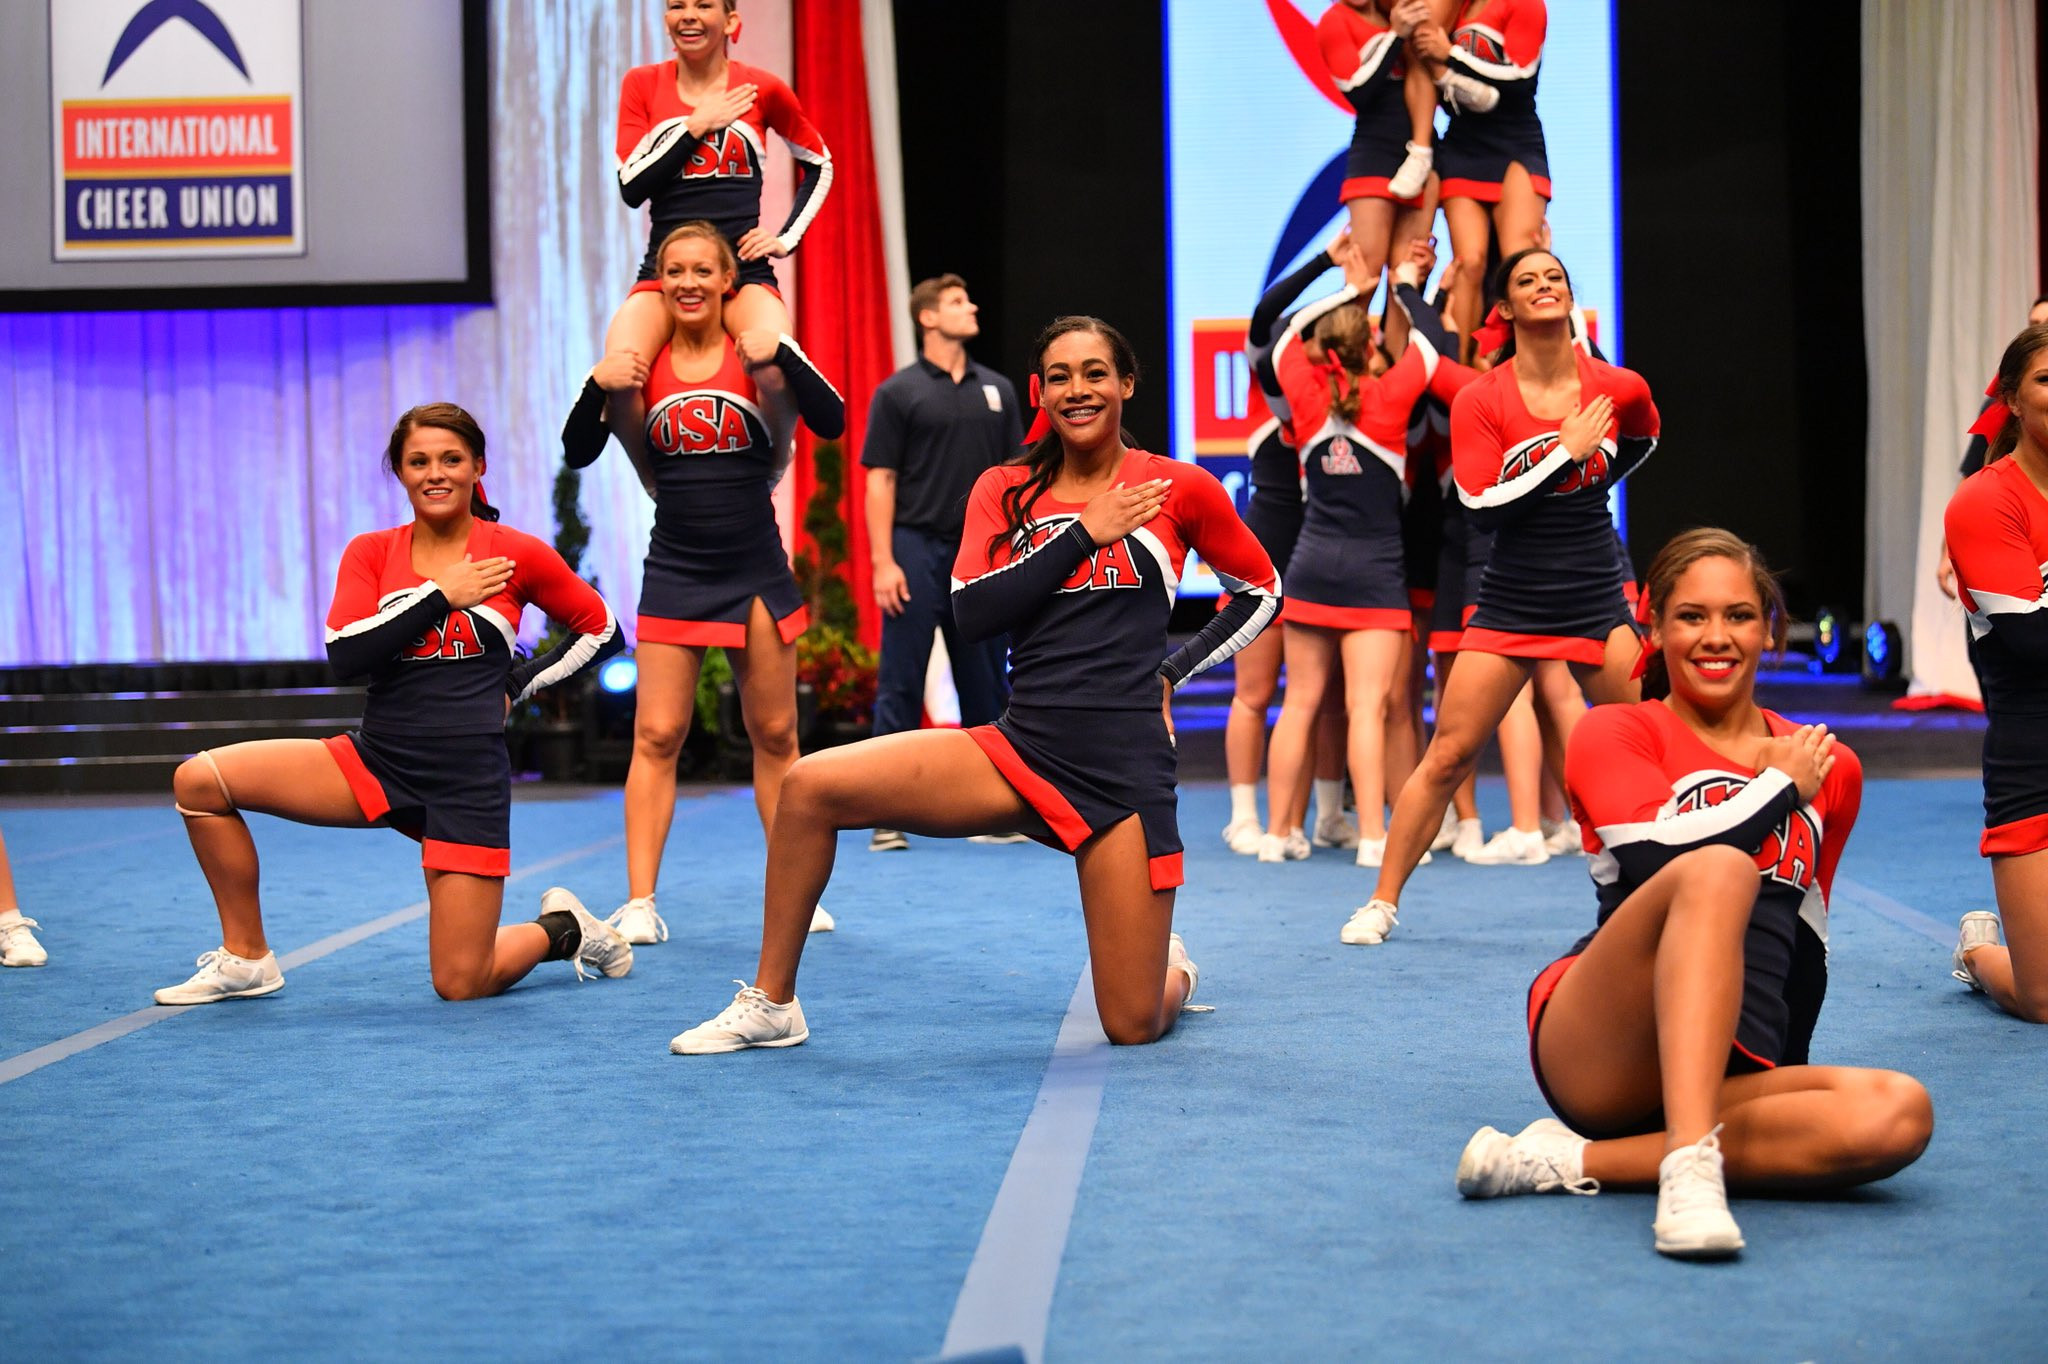 """""""We are proud to send the University of Kentucky to represent the United States of America,"""" says Lauri Harris, executive director of USA Cheer ©USACheer/Twitter"""